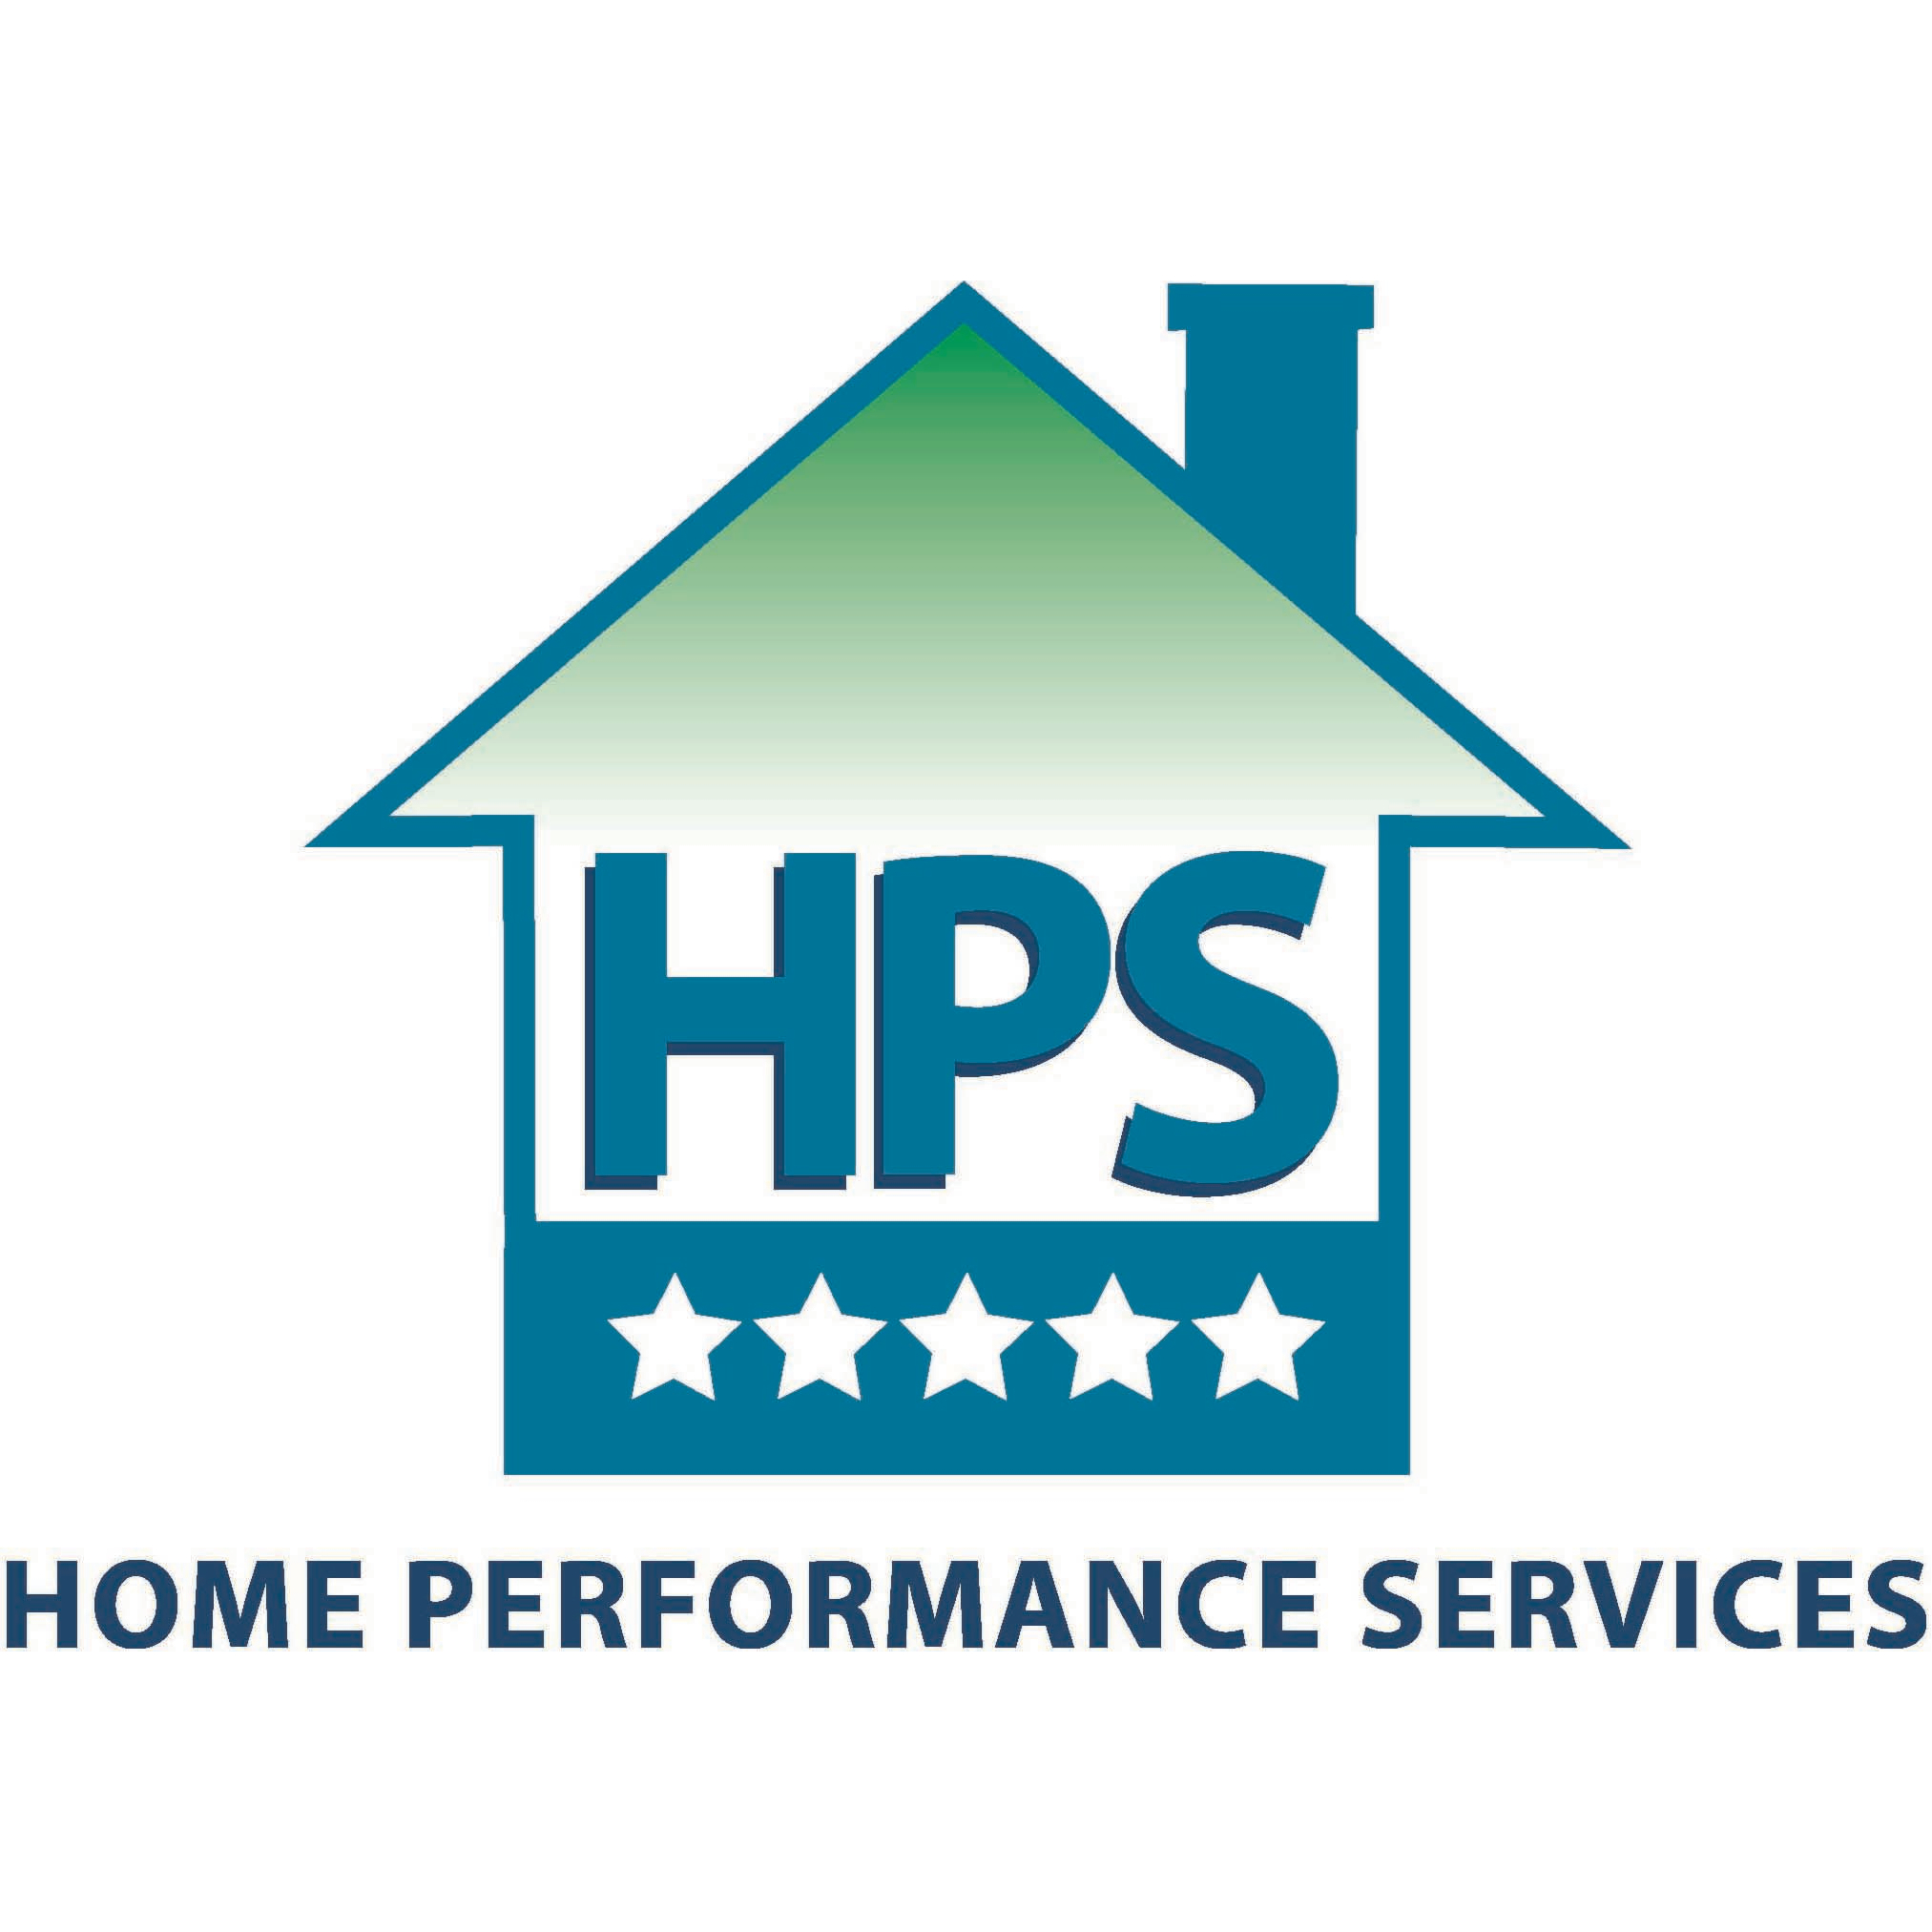 Home Performance Services